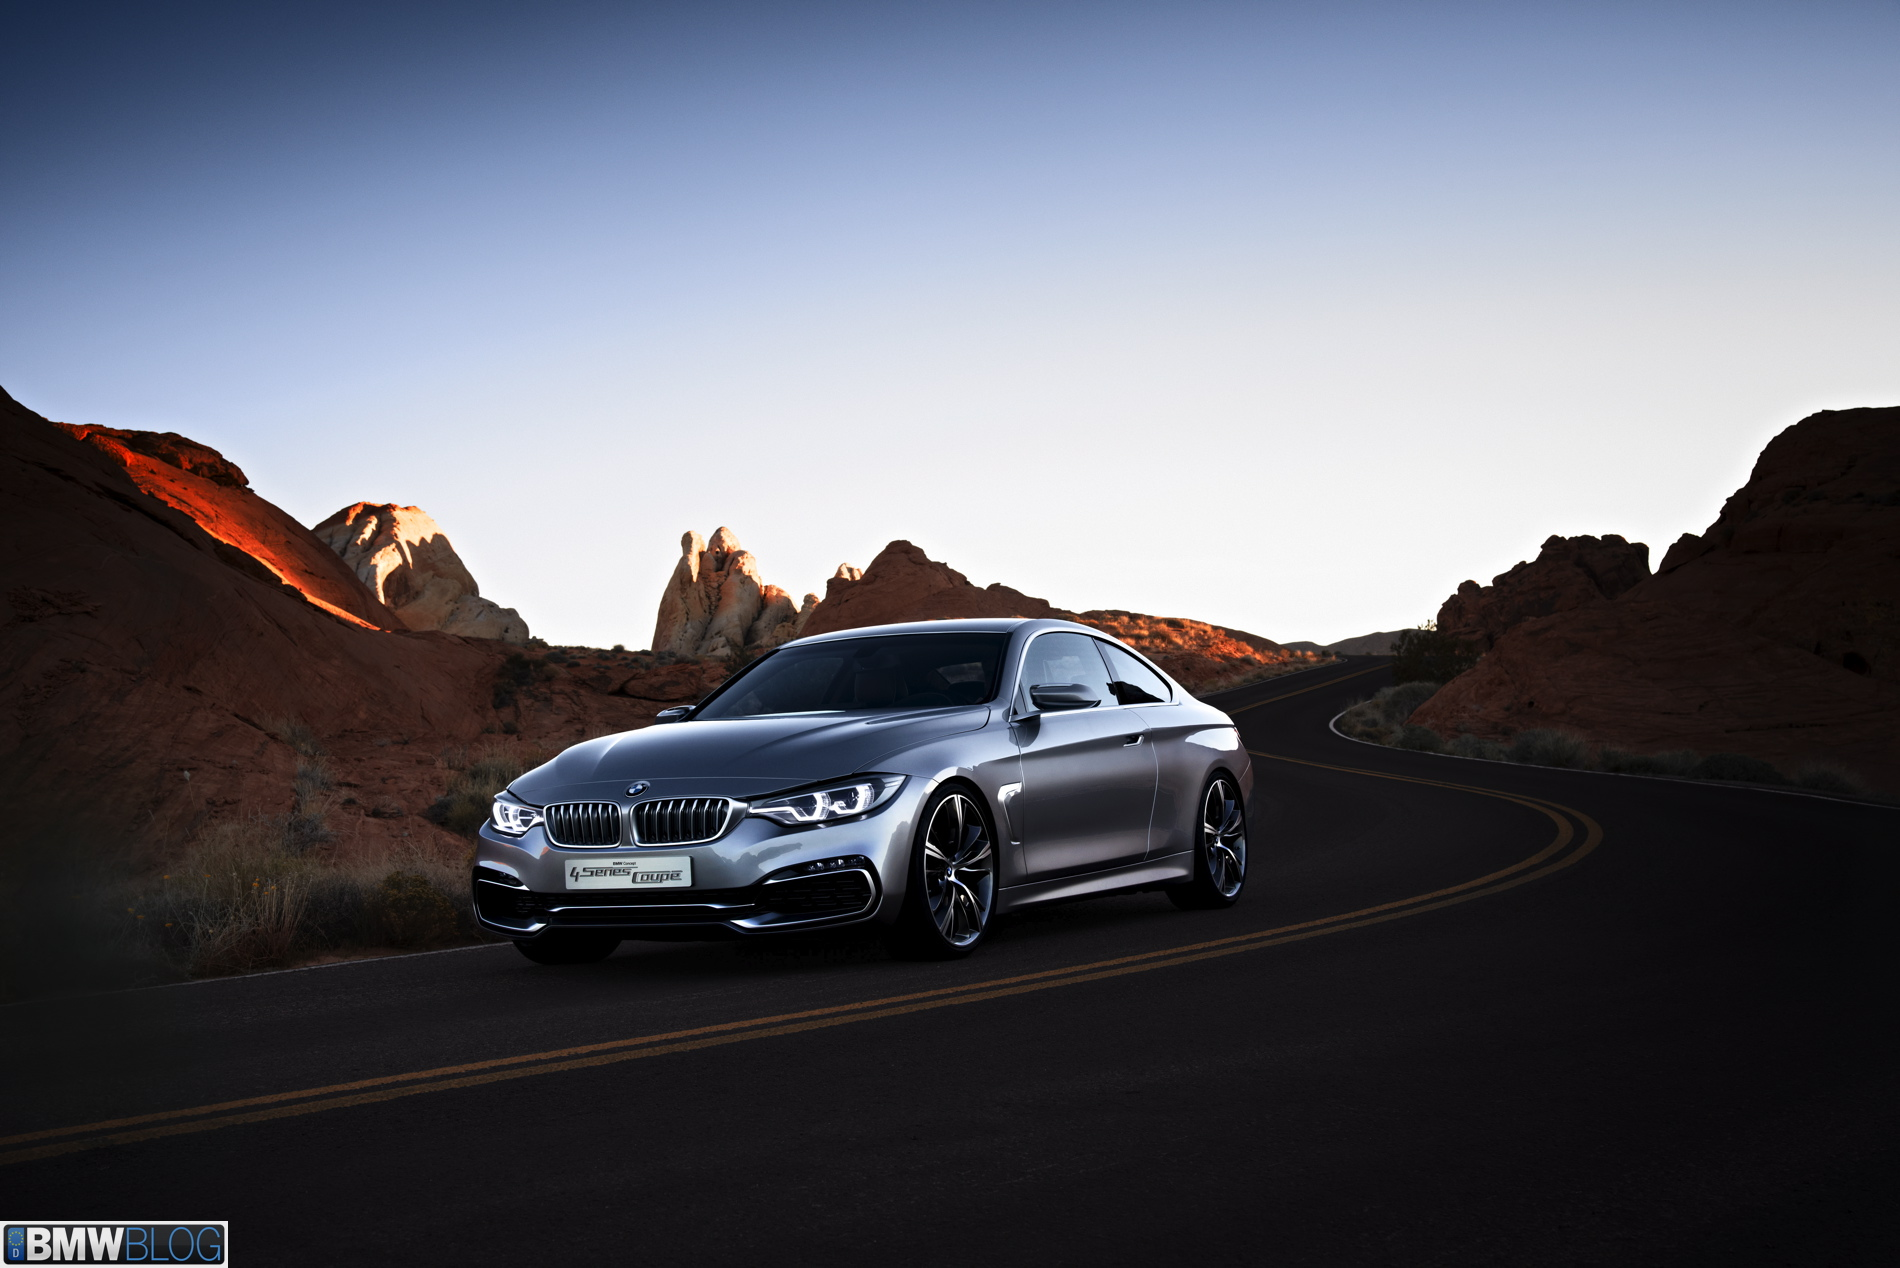 BMW 4 series images 061